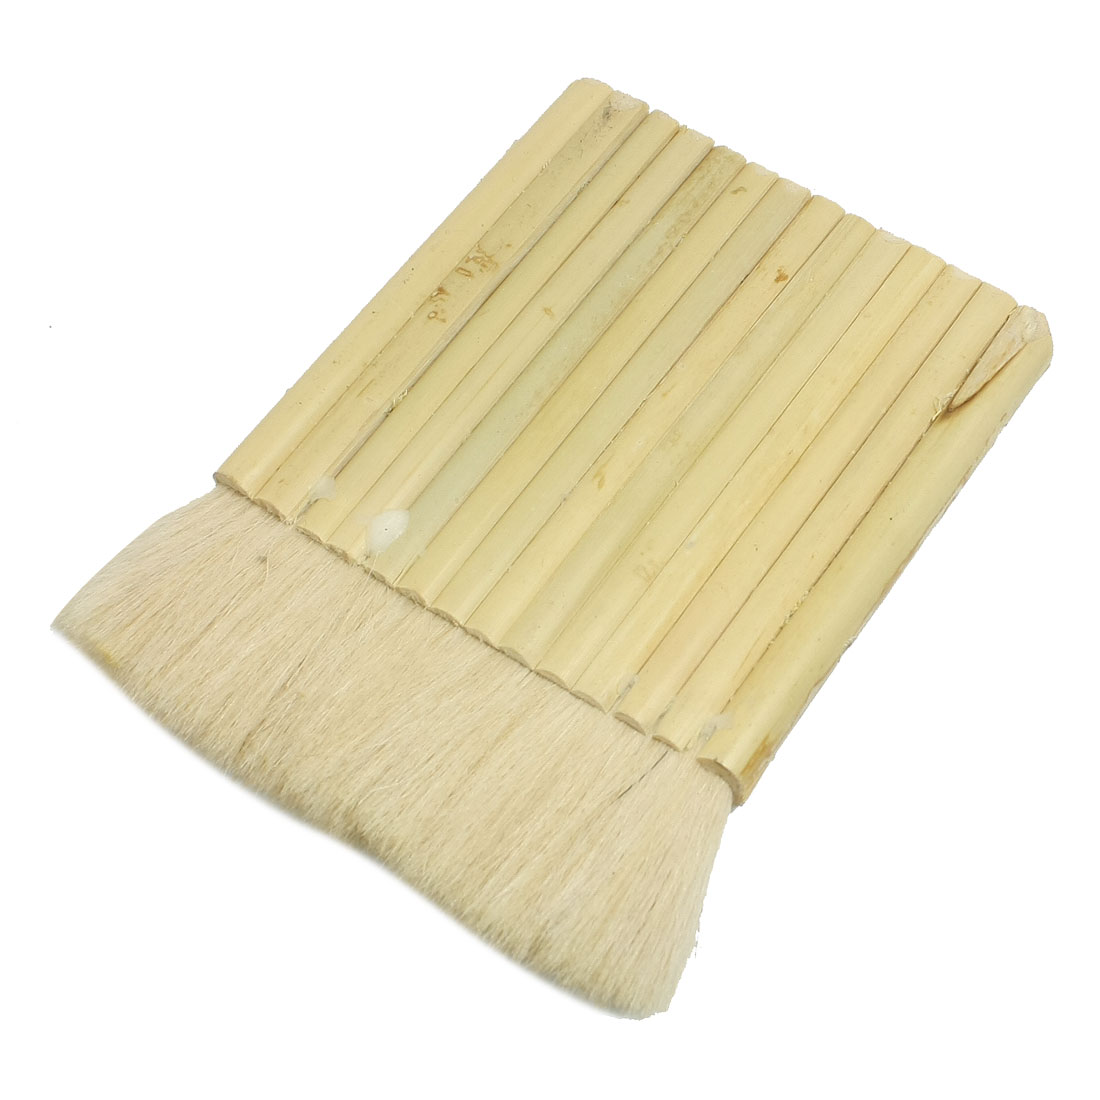 "4"" Width Soft Faux Wool Wood Handgrip Oil Paint Brush Painting Tool"